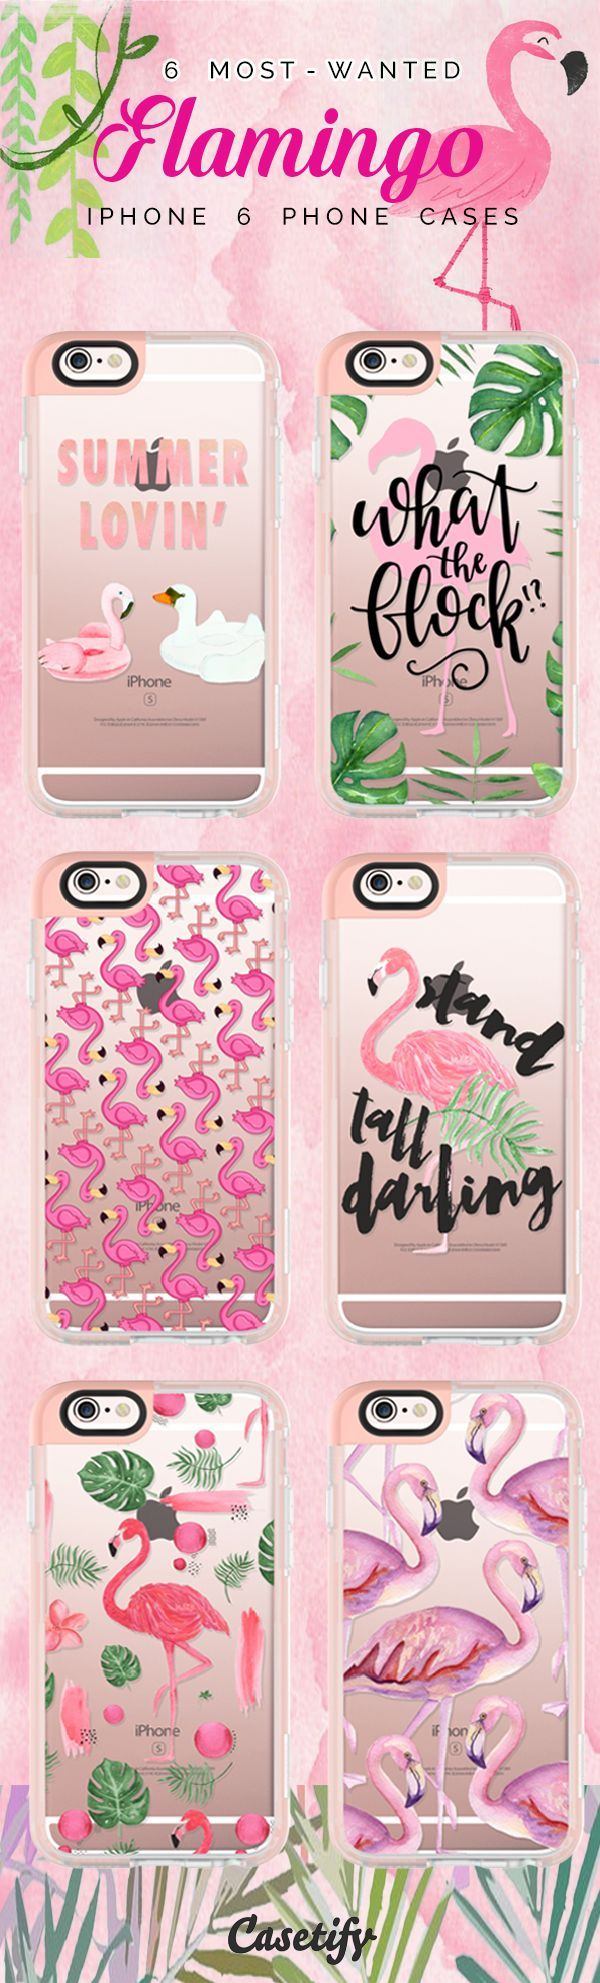 Top 6 Flamingo iPhone 6 protective phone case designs | Click through to see more iPhone phone case idea. Let's flamingo! >>> https://www.casetify.com/collections/iphone-6s-flamingo-cases?device=iphone-6s/ | @casetify